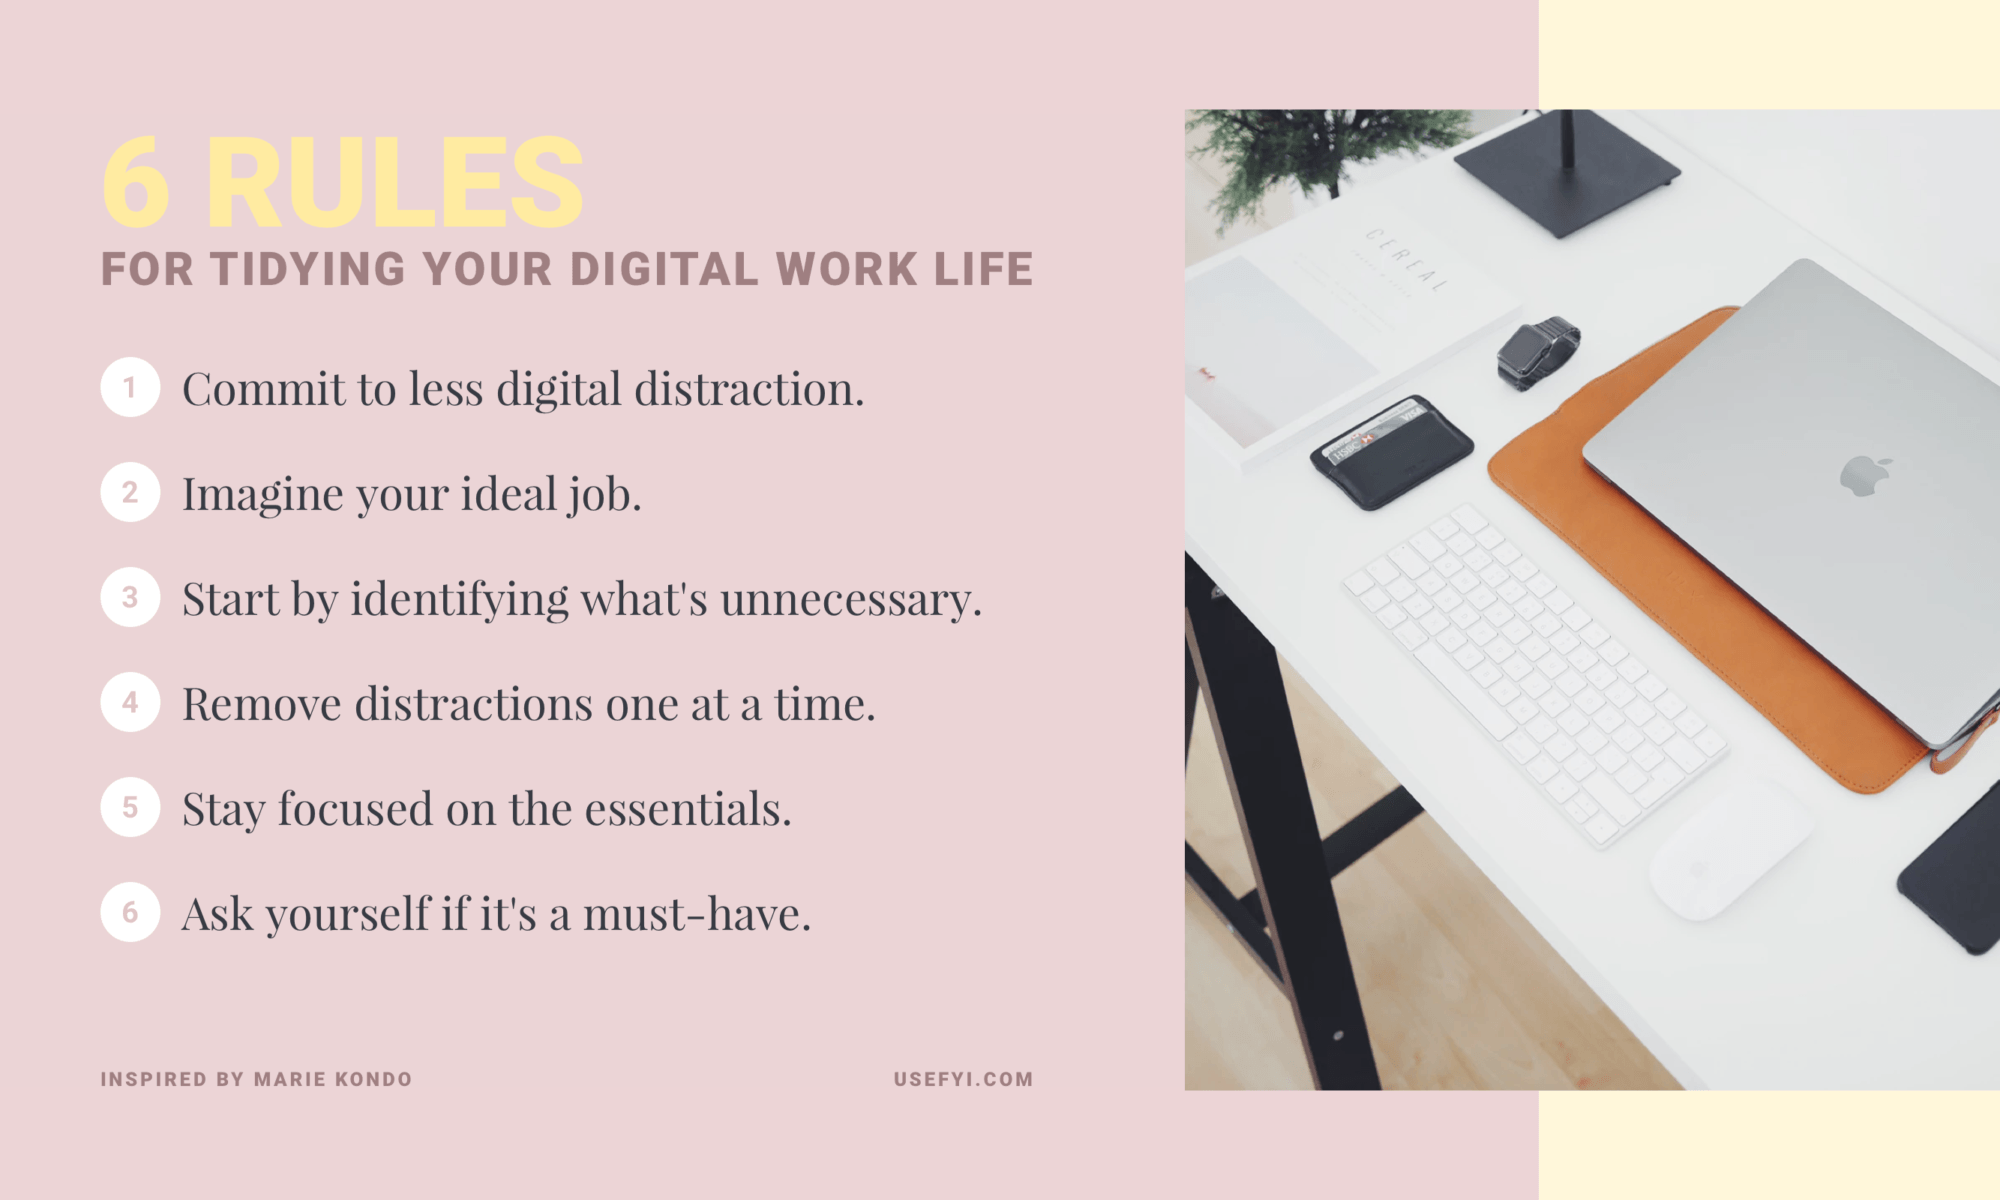 6 rules for tidying up your digital work life